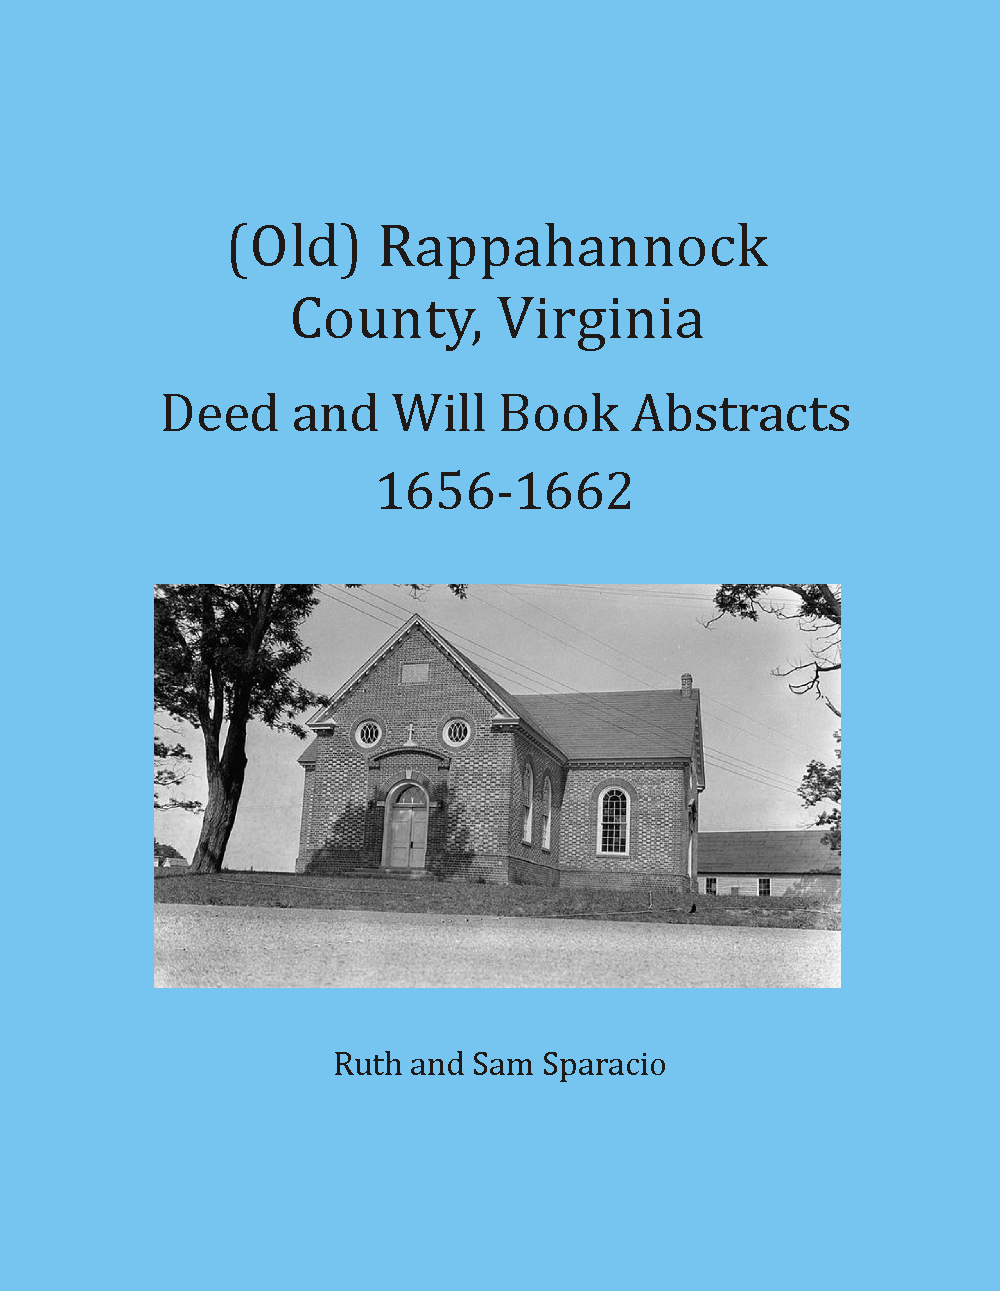 (Old) Rappahannock County, Virginia Deed and Will Book Abstracts, 1656-1662